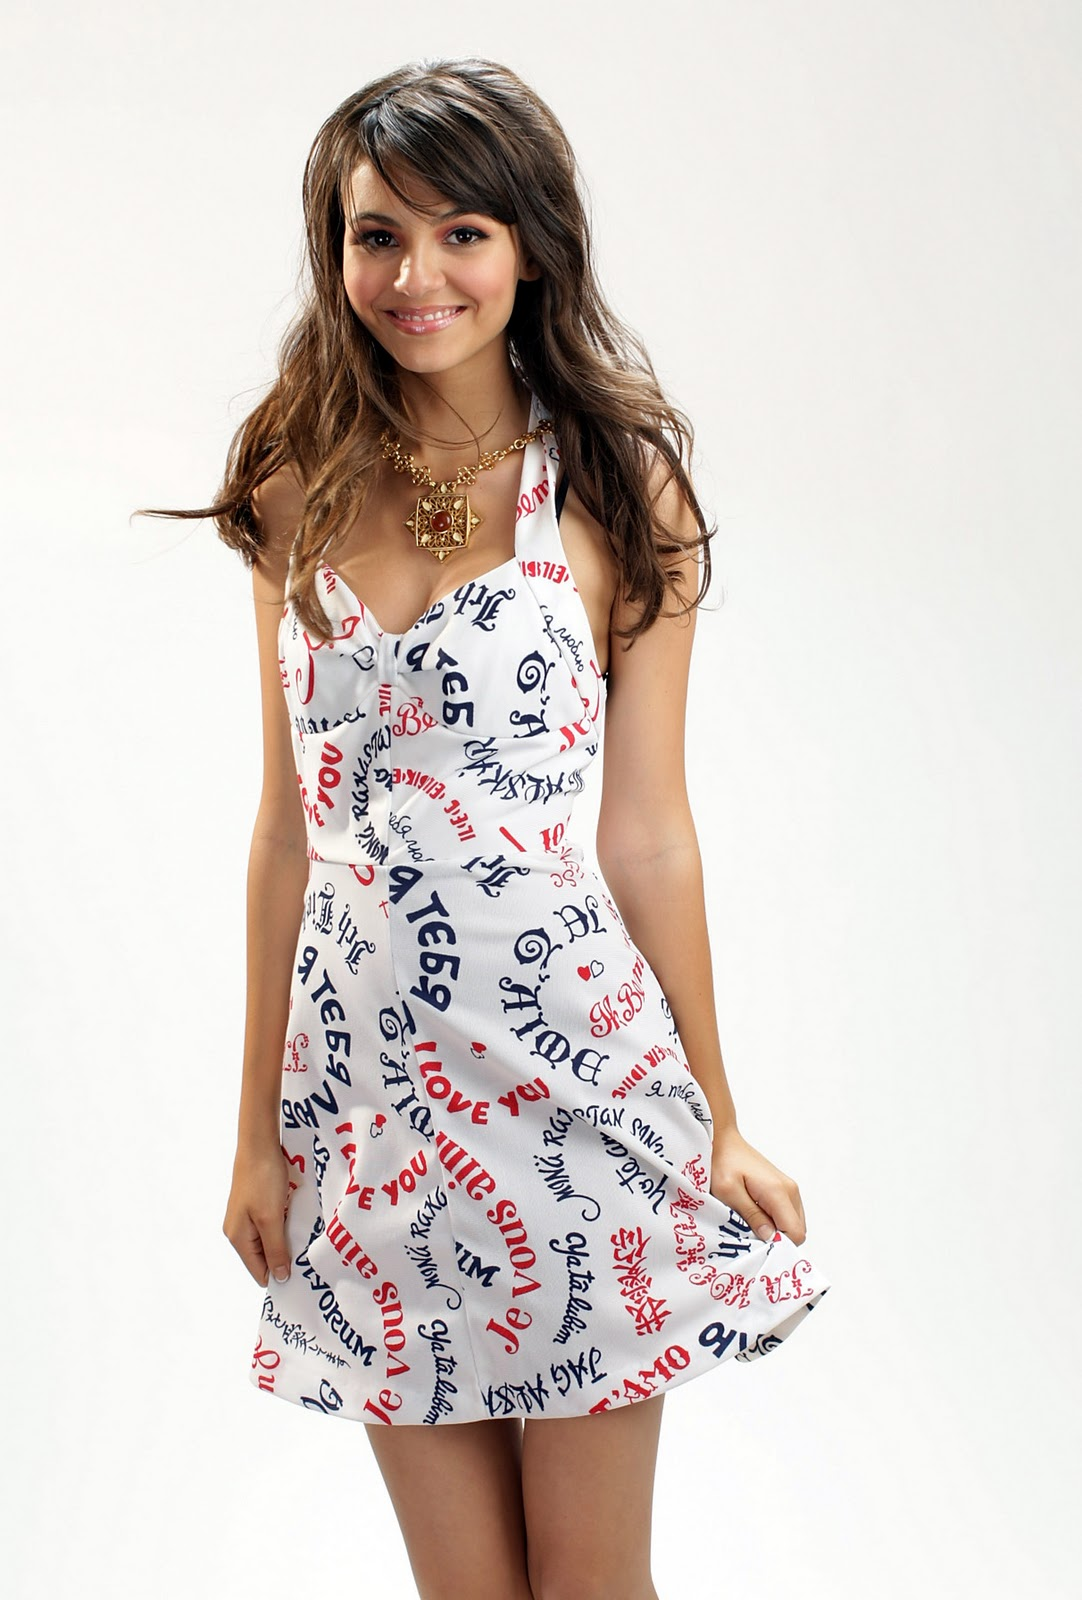 Victoria Justice Wearing Cute Dresses In Promotional Photoshoot